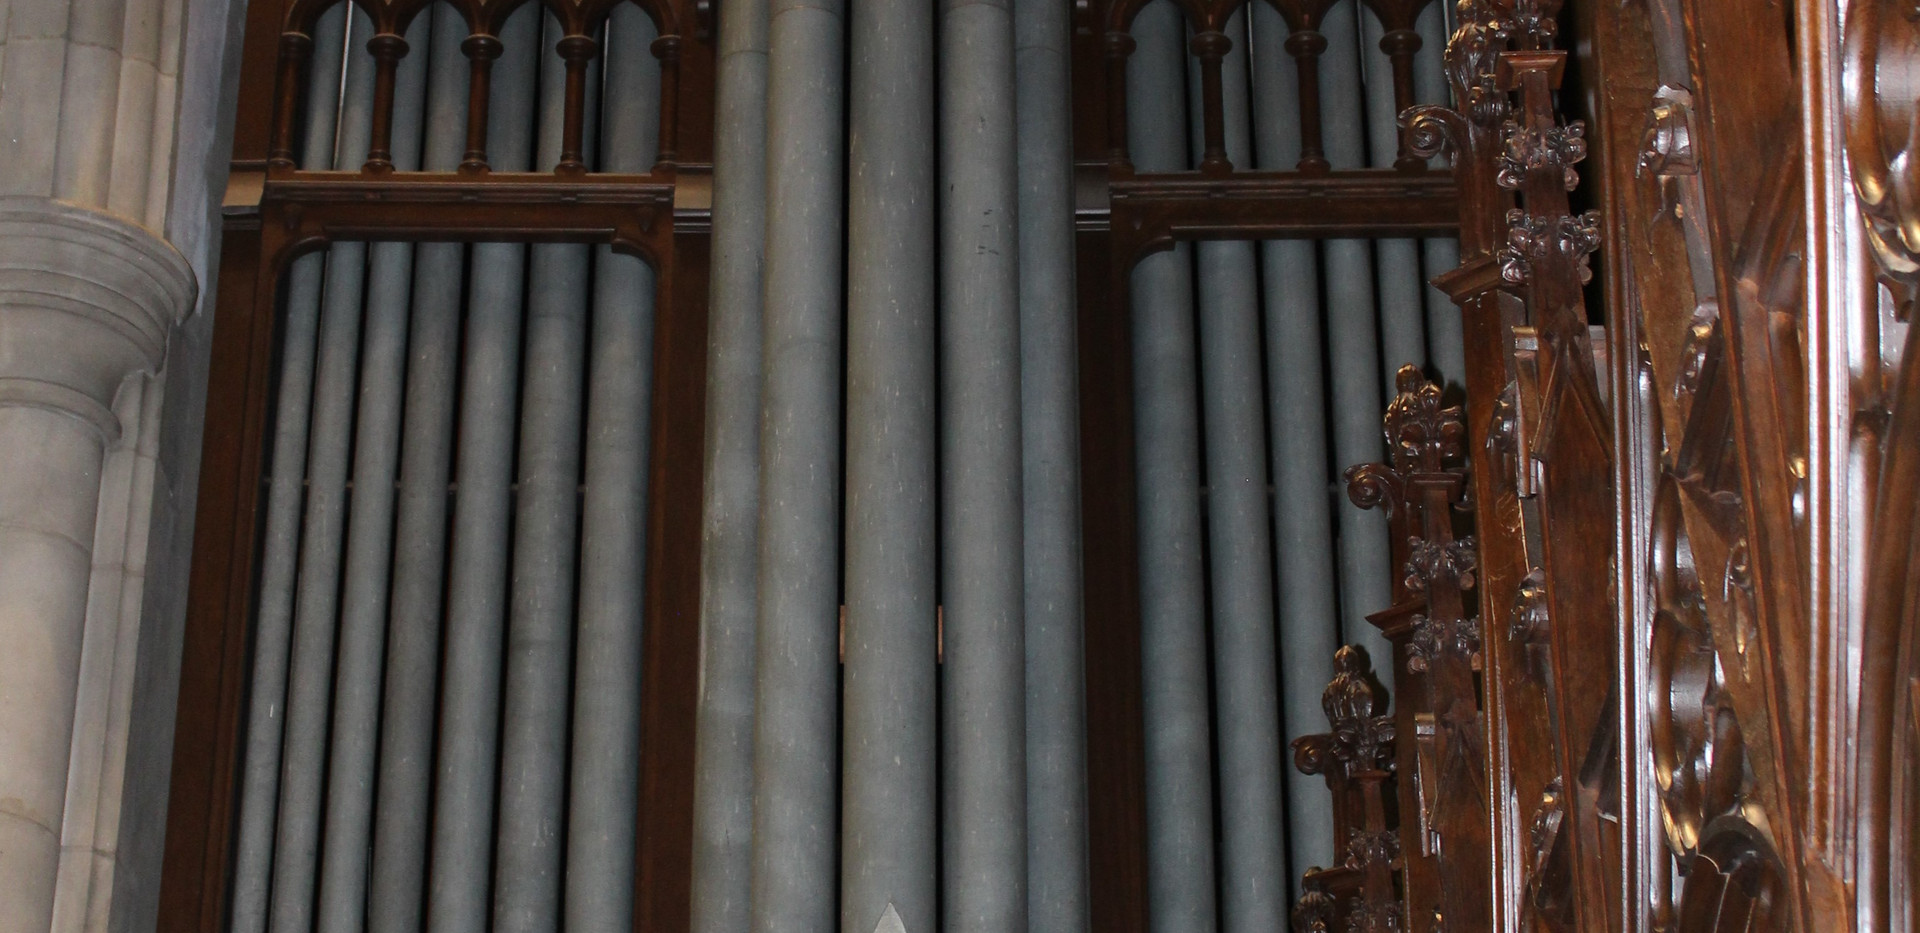 Pipe for the Organ